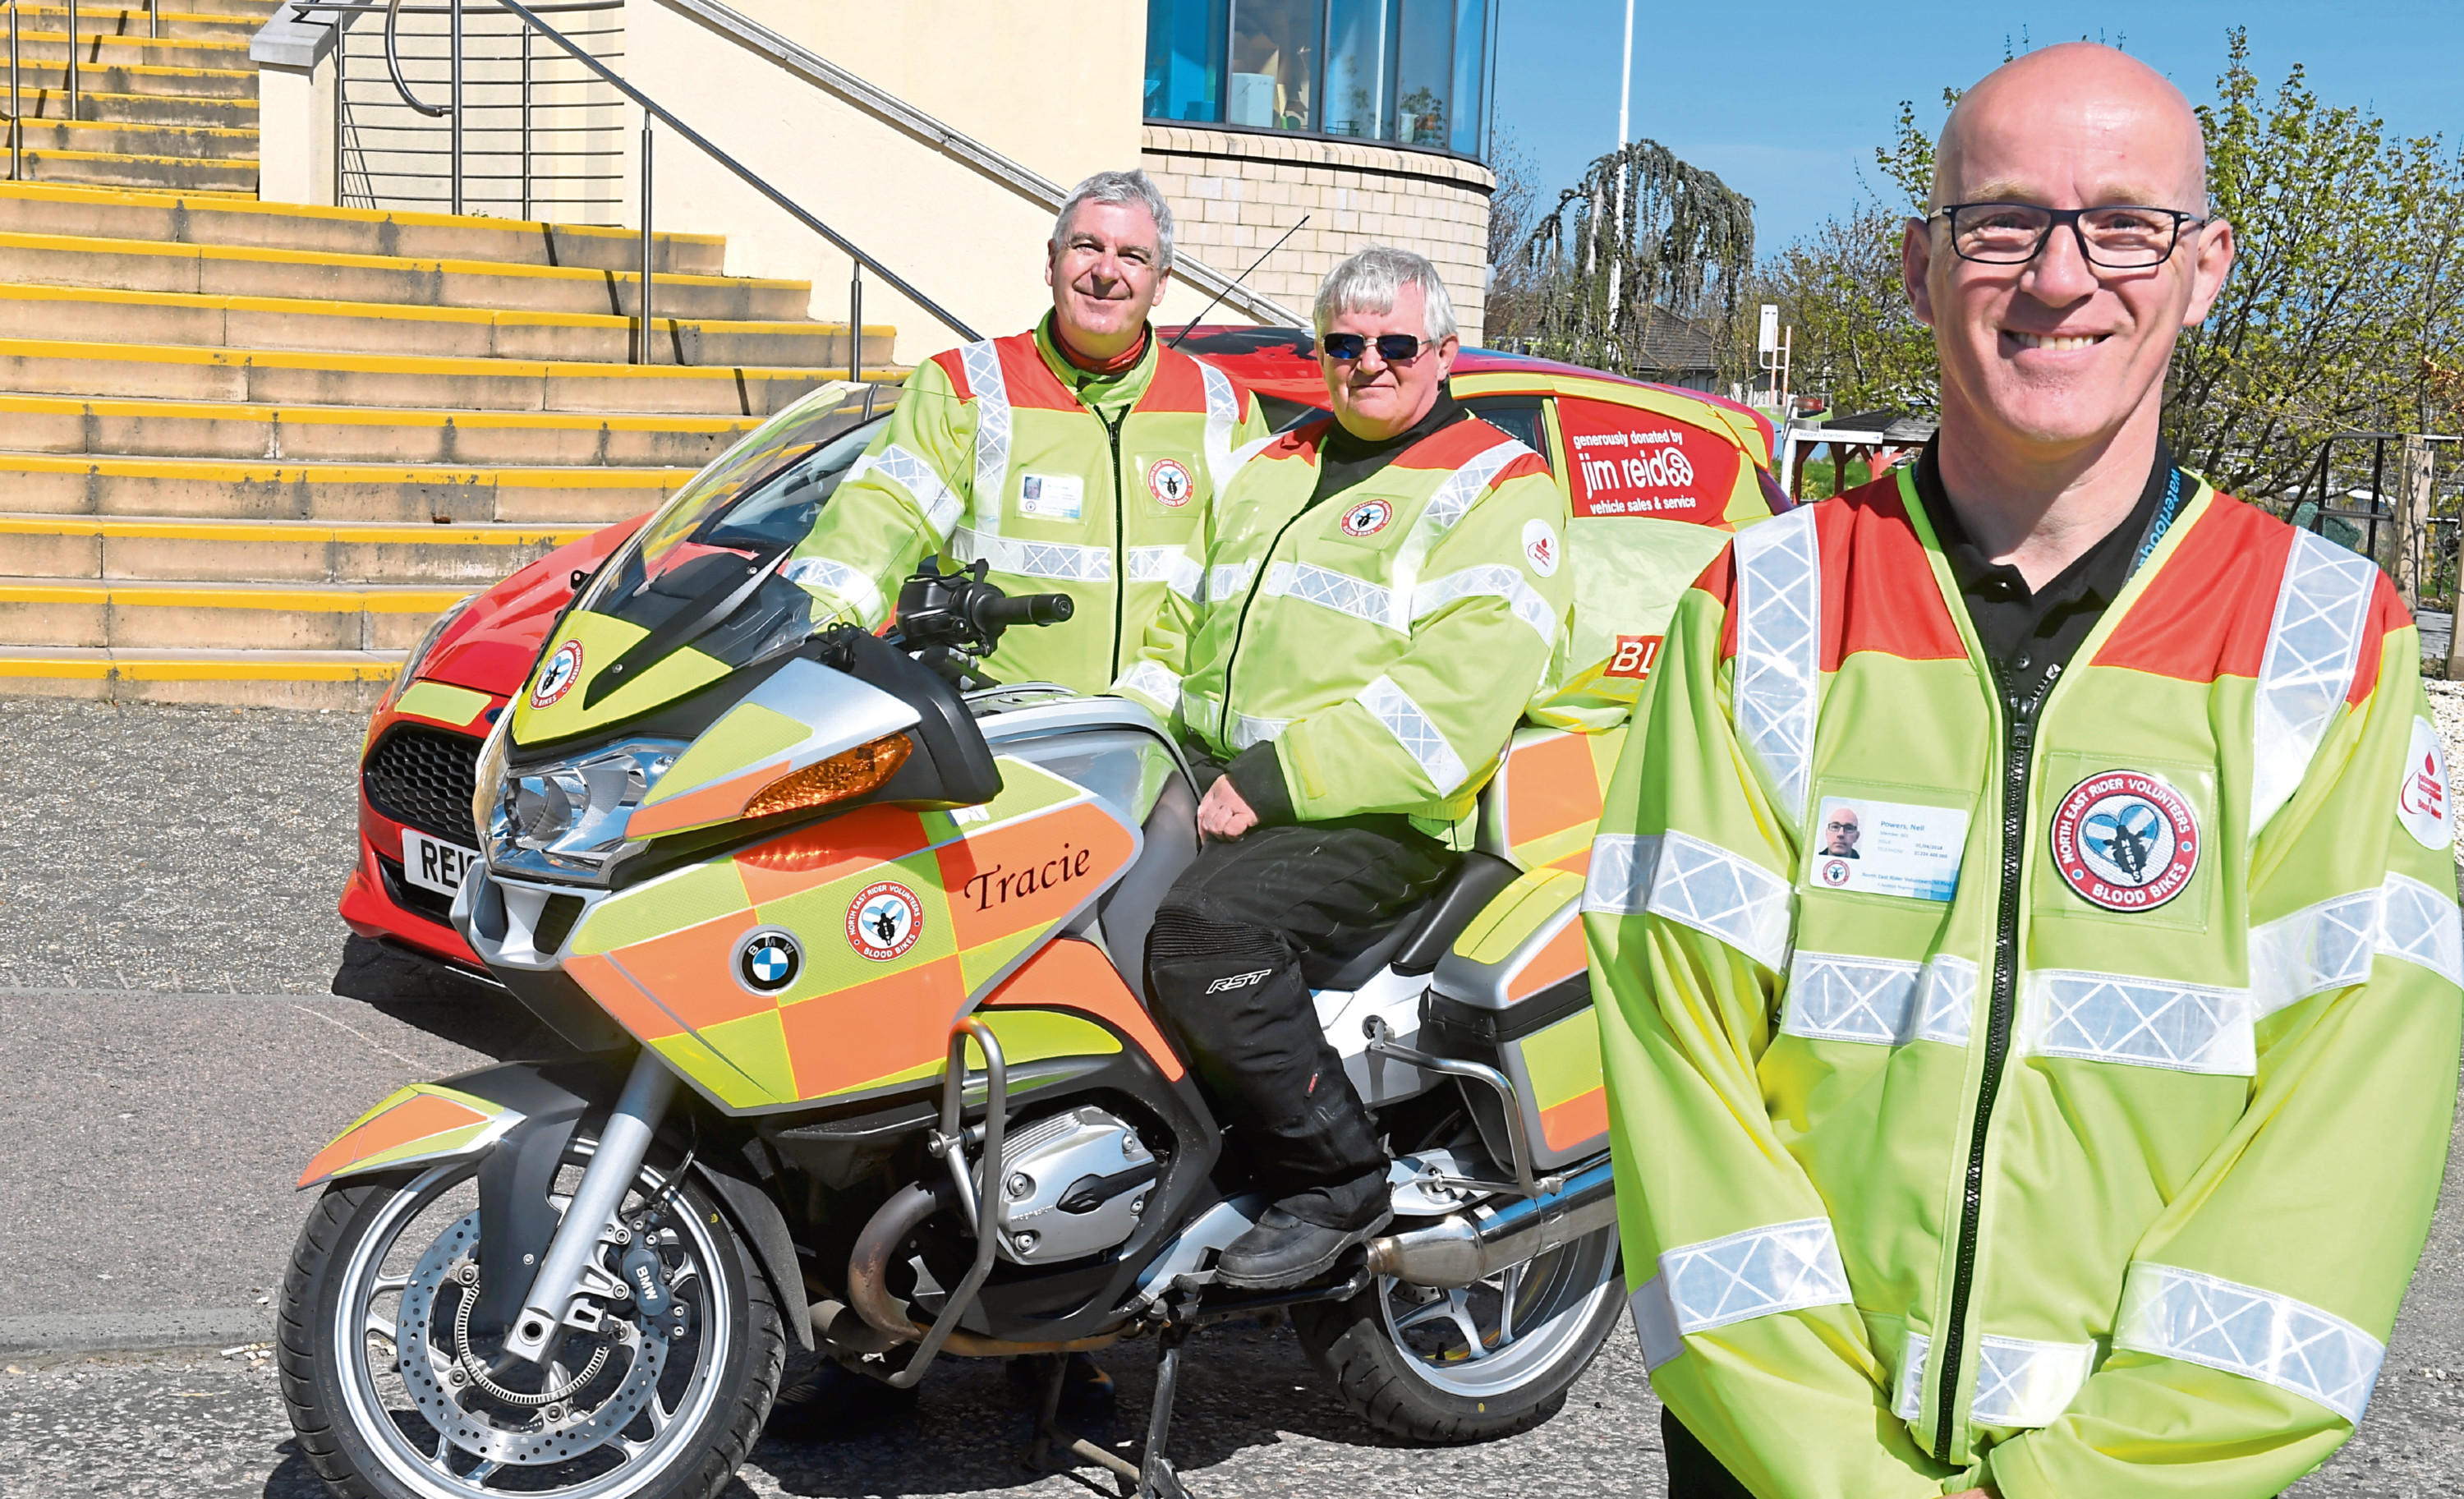 Neil Powers, front, founder and chairman of NERVS, with Dave Barwick, the operations manager, and fleet manager and volunteer rider Graeme Morrice.